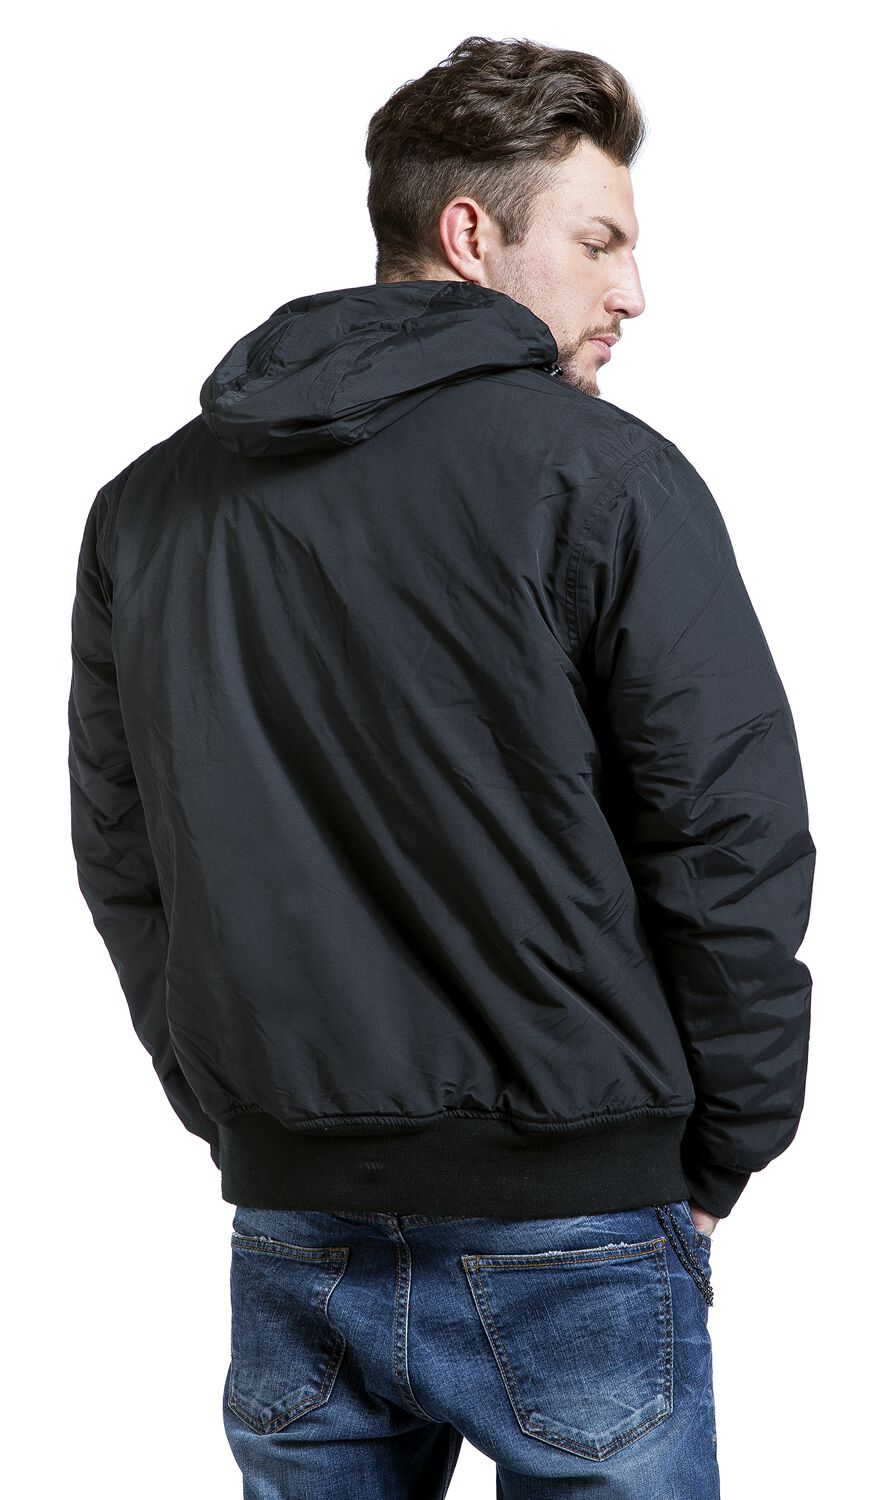 Dickies. Indietro. Cornwell. Giacca invernale. 7 recensioni. Indietro. -37% 0d3e4fb5550